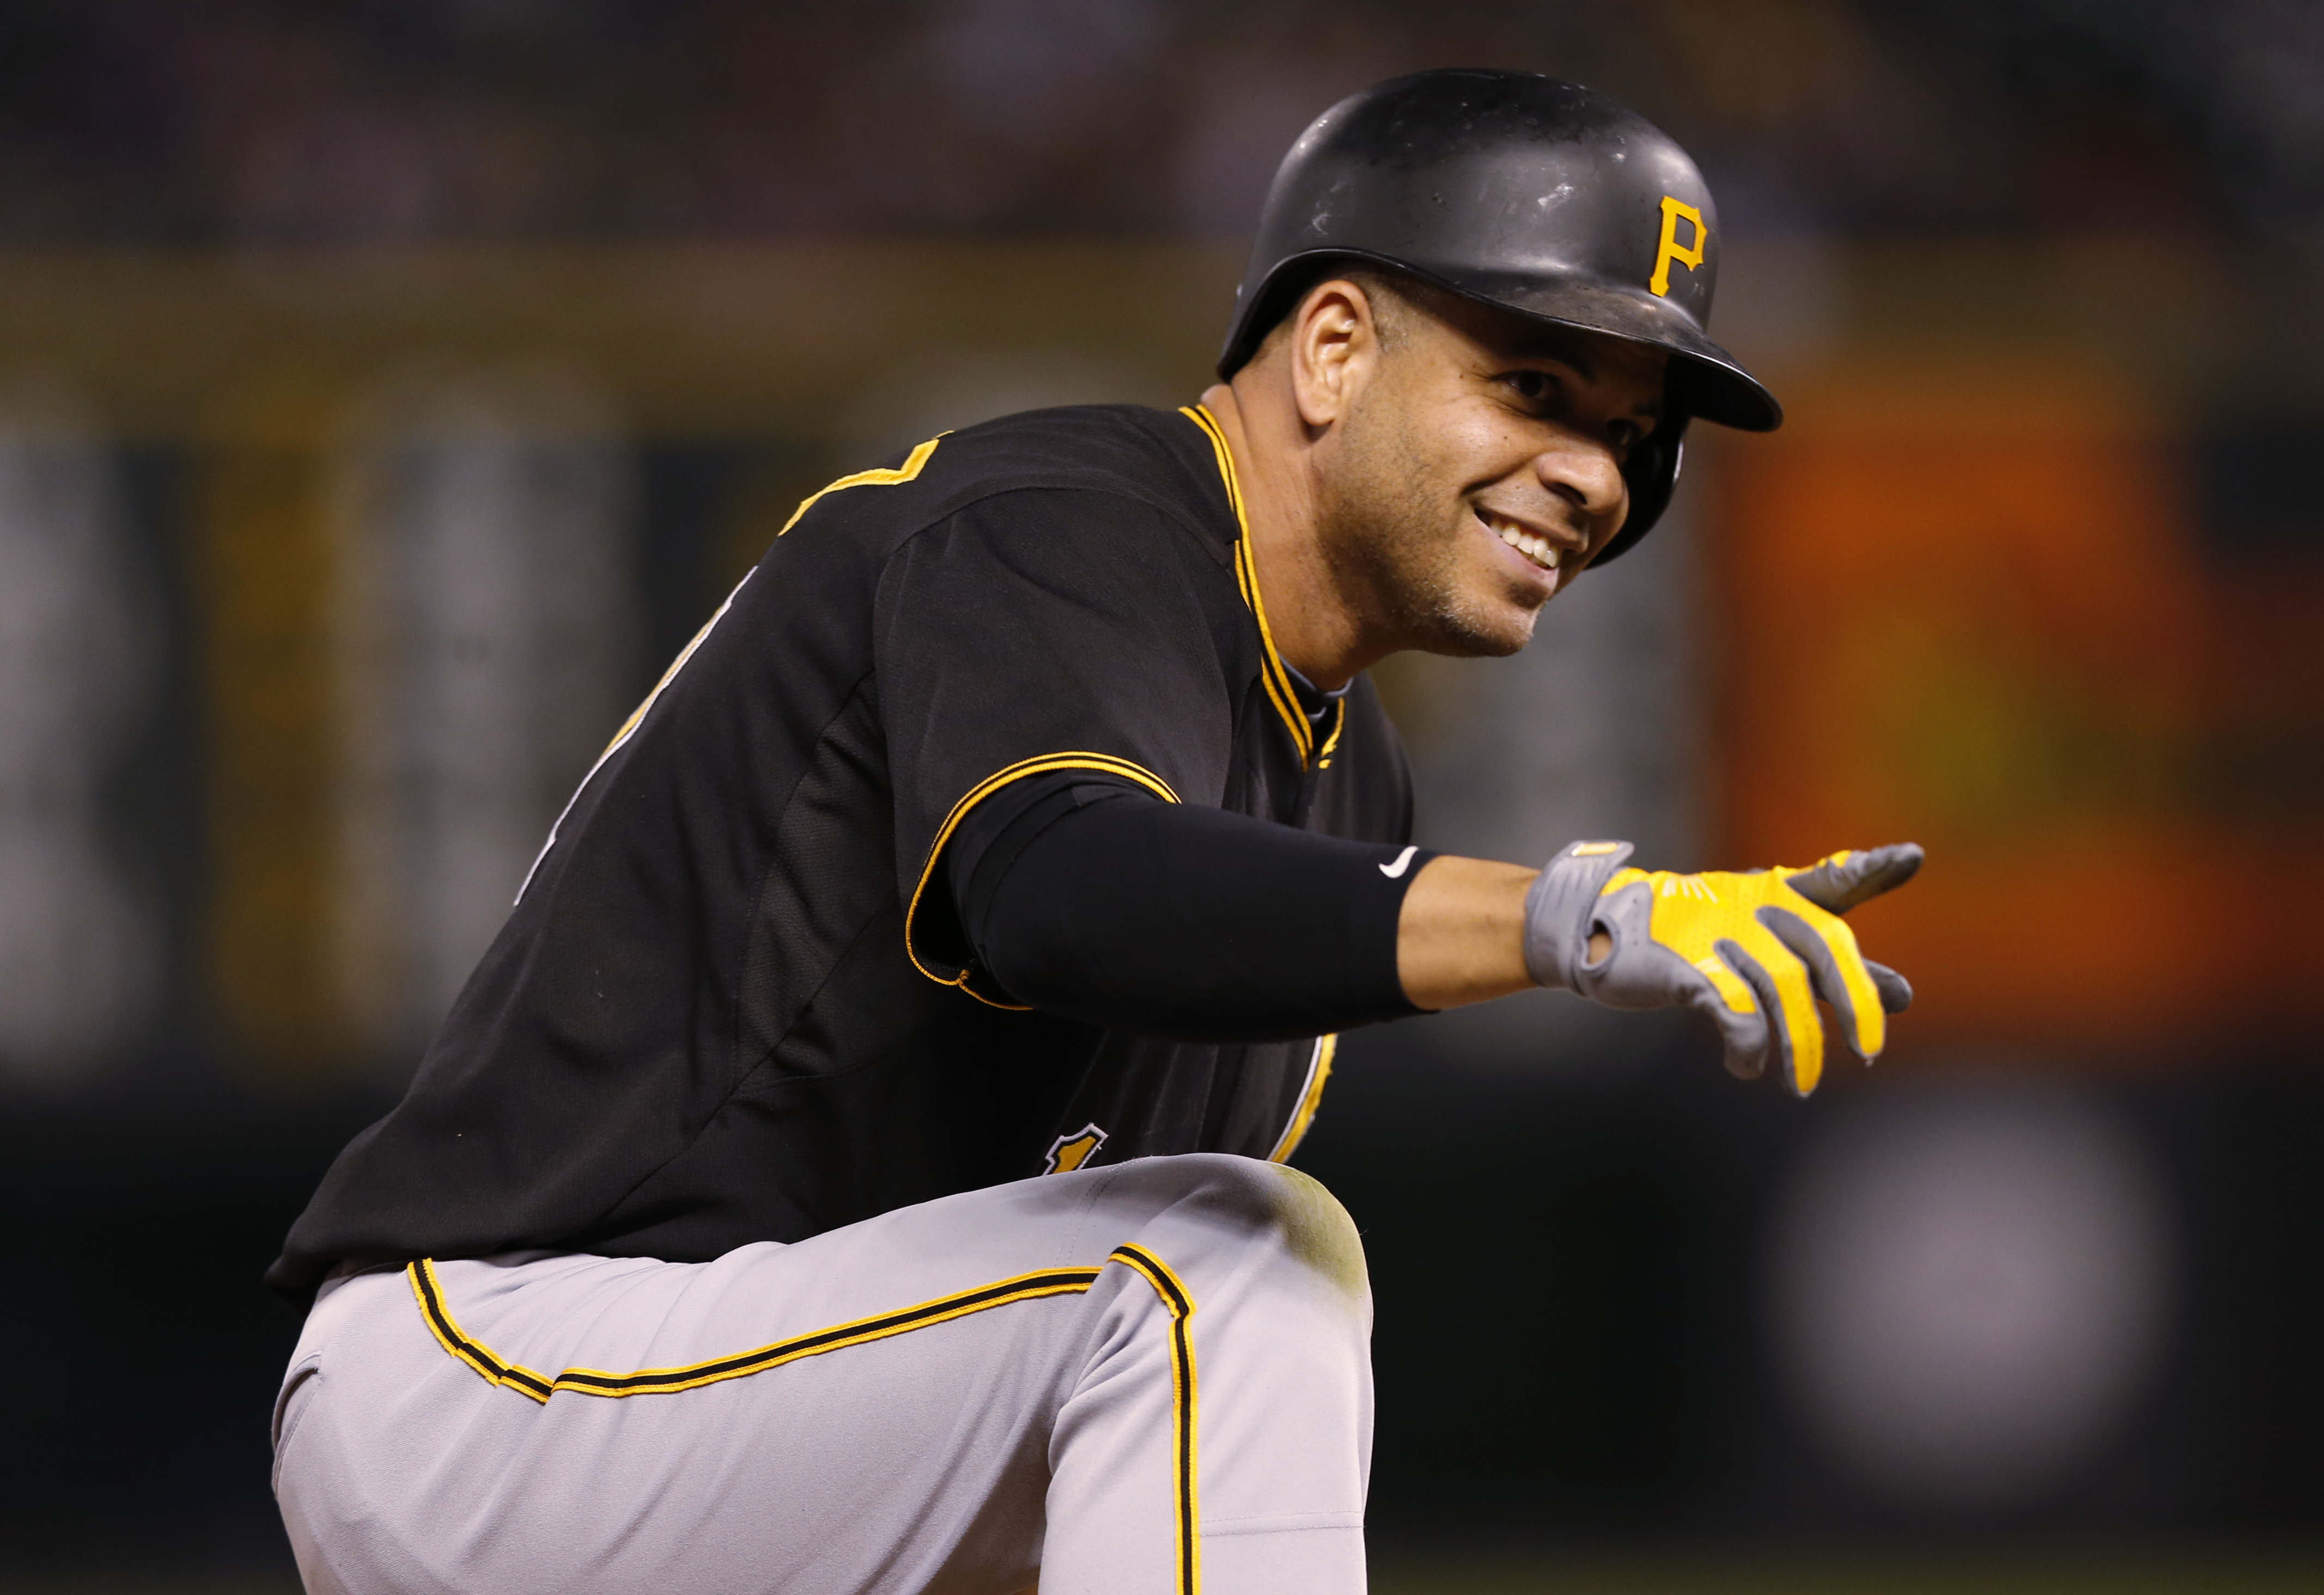 Pittsburgh Pirates' Aramis Ramirez points to teammates after his RBI triple off Colorado Rockies starting pitcher Chris Rusin during the fourth inning of a baseball game Tuesday, Sept. 22, 2015, in Denver. (AP Photo/David Zalubowski)